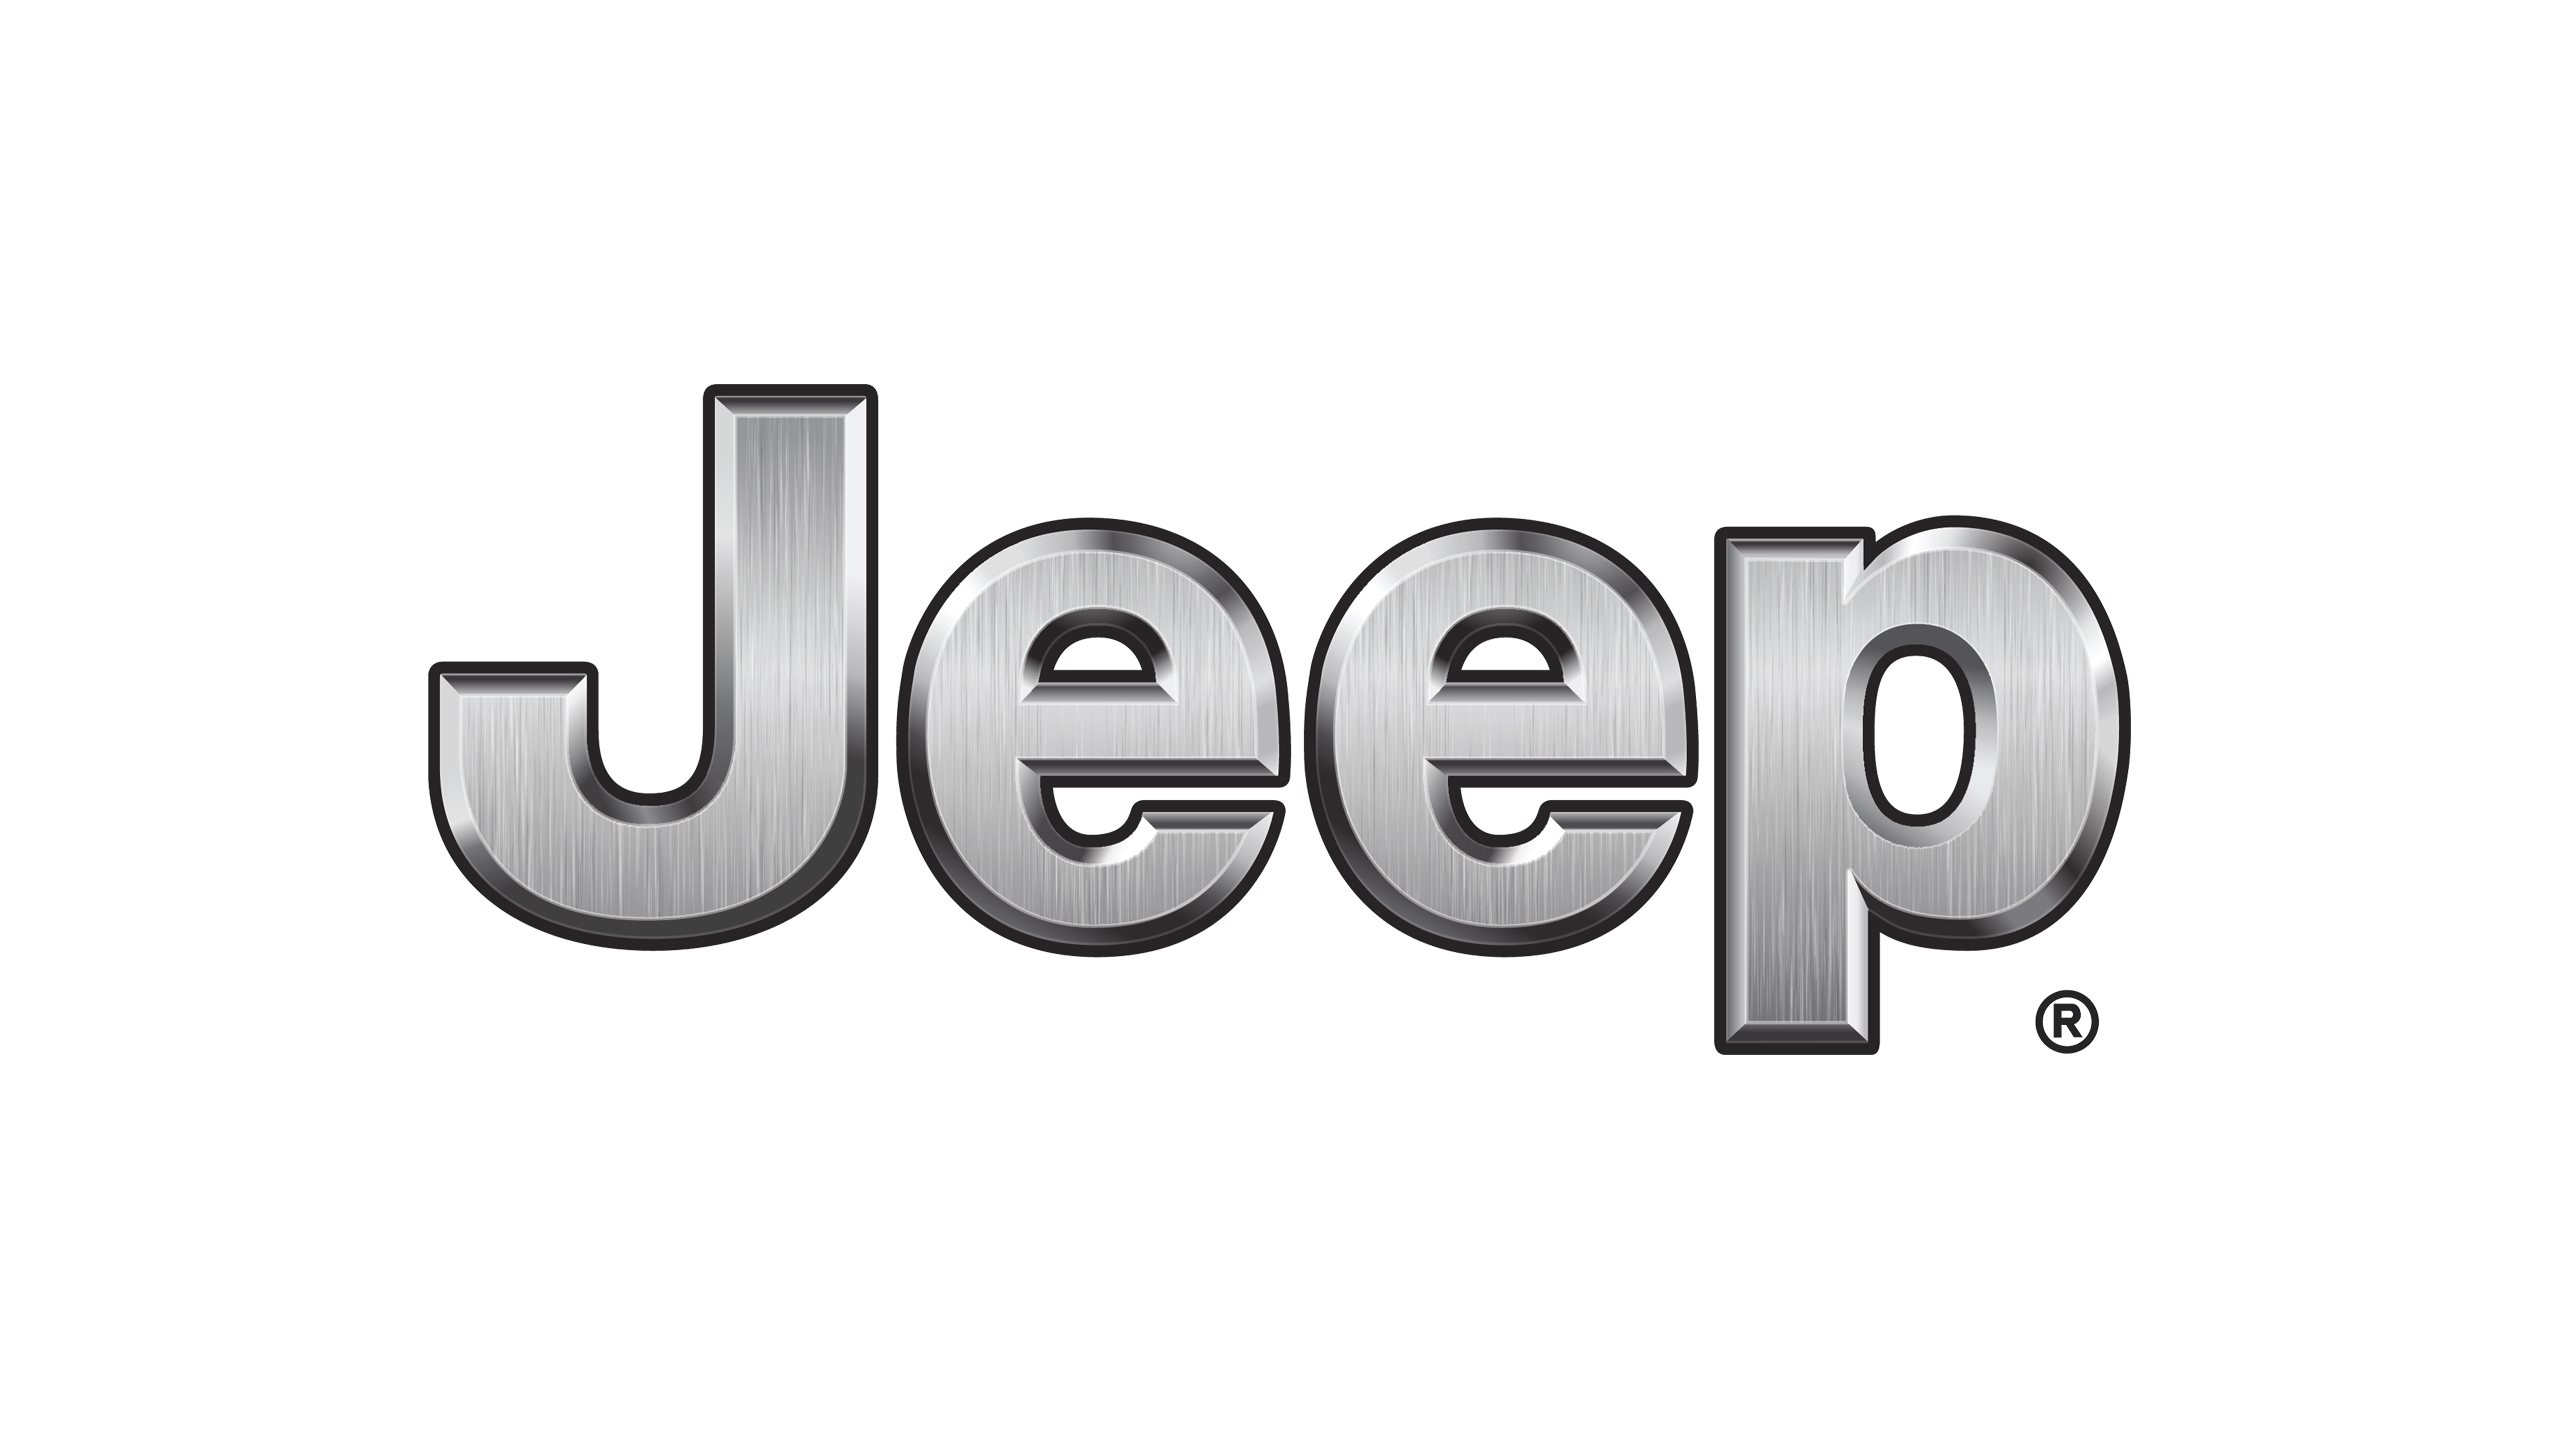 White jeep logo png. Hd meaning information carlogos